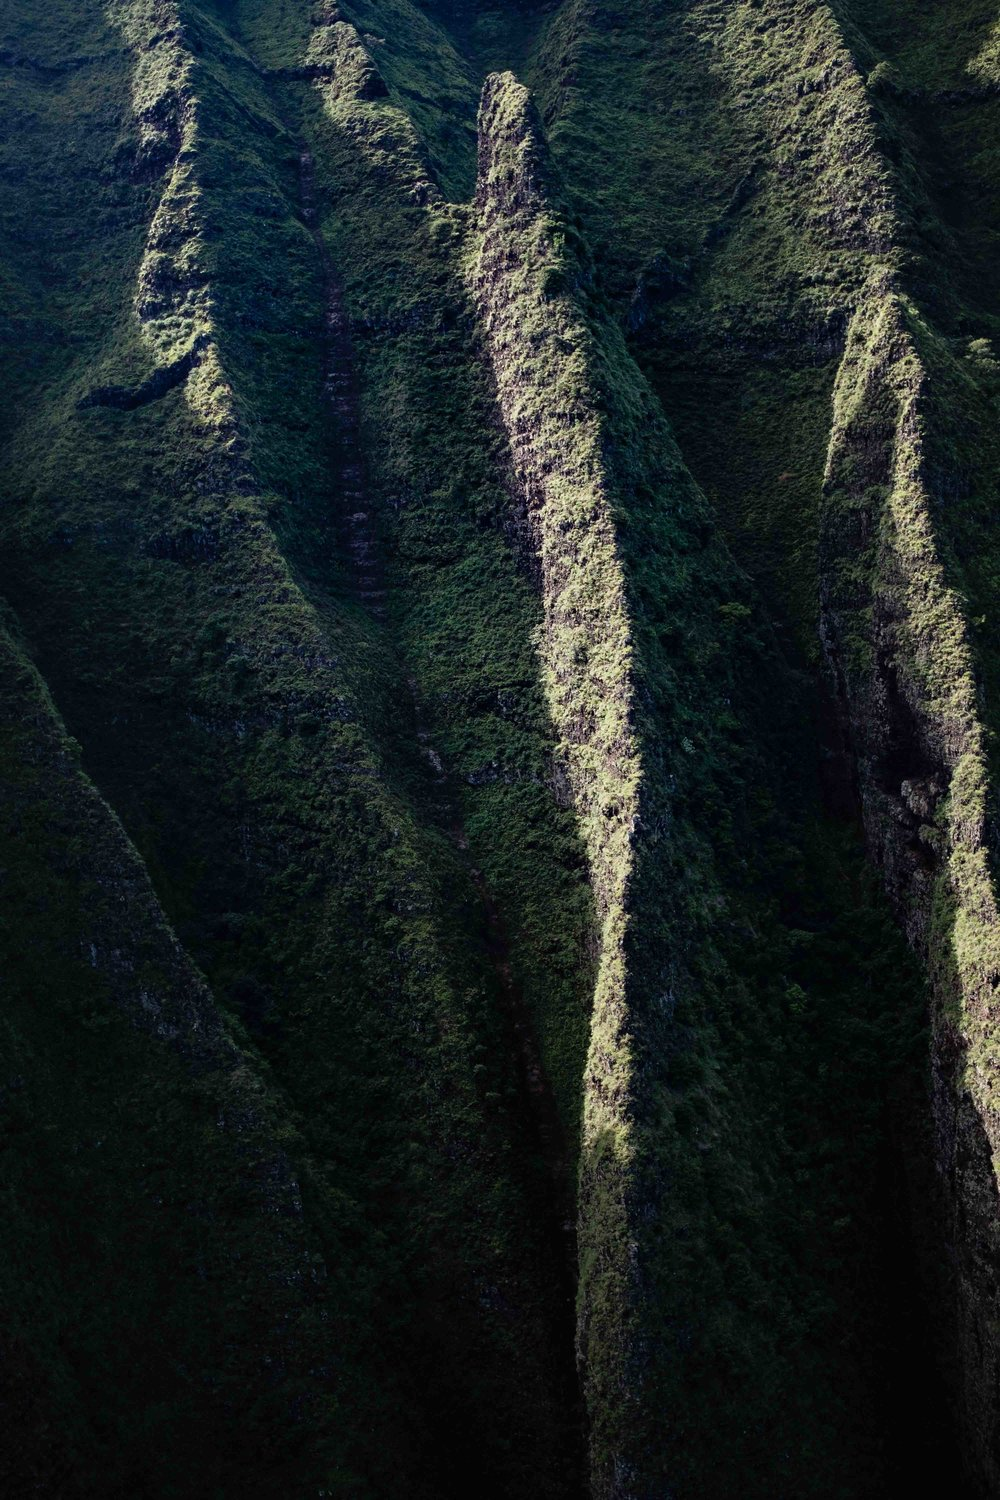 A closeup of the cathedral cliffs of Kauai